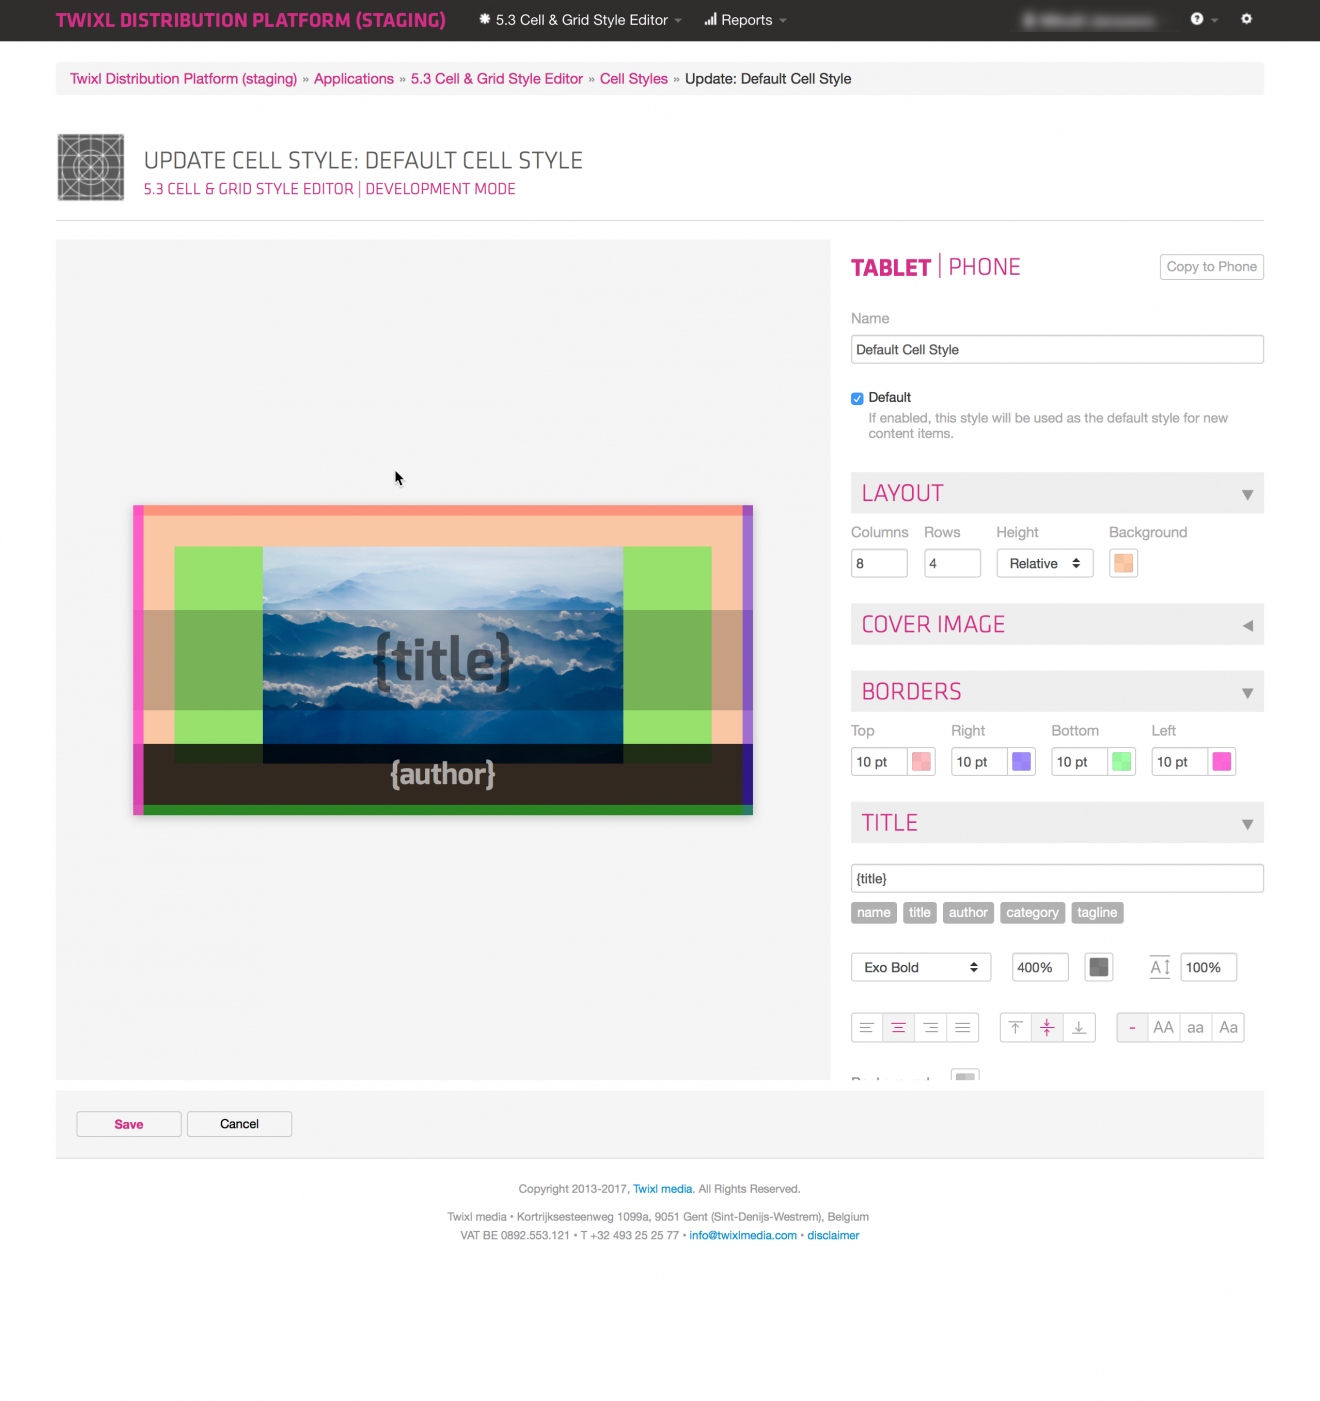 Twixl media - Twixl Publisher 5.5 - UI Design - Browse pages cell styles - Picture